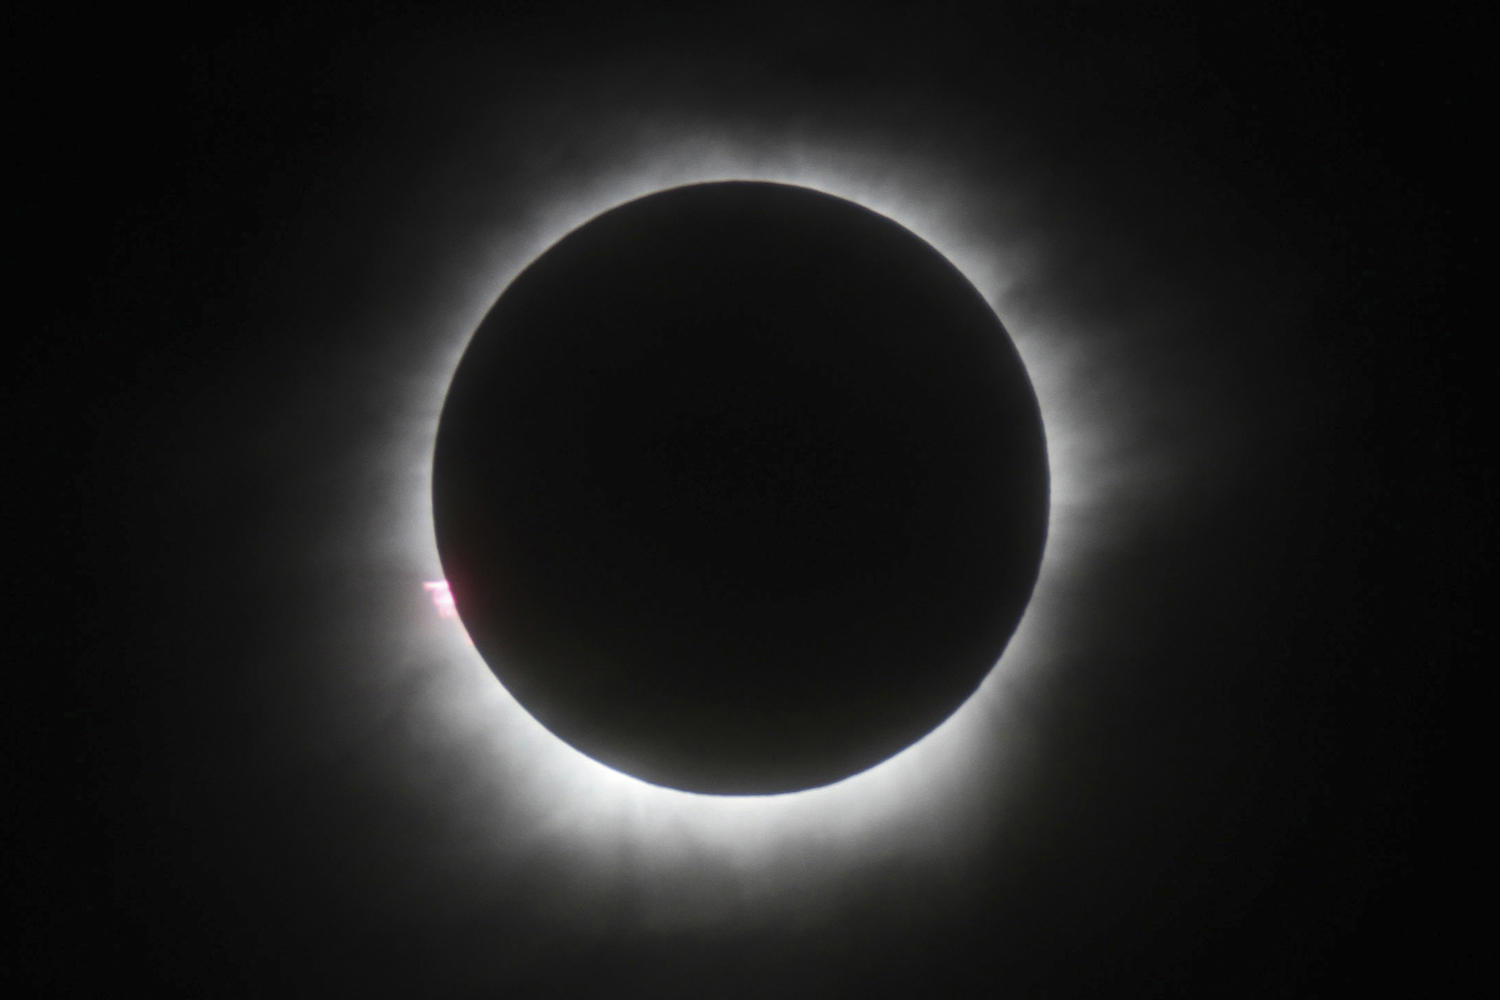 Preparing for Monday's solar eclipse? Think safety first